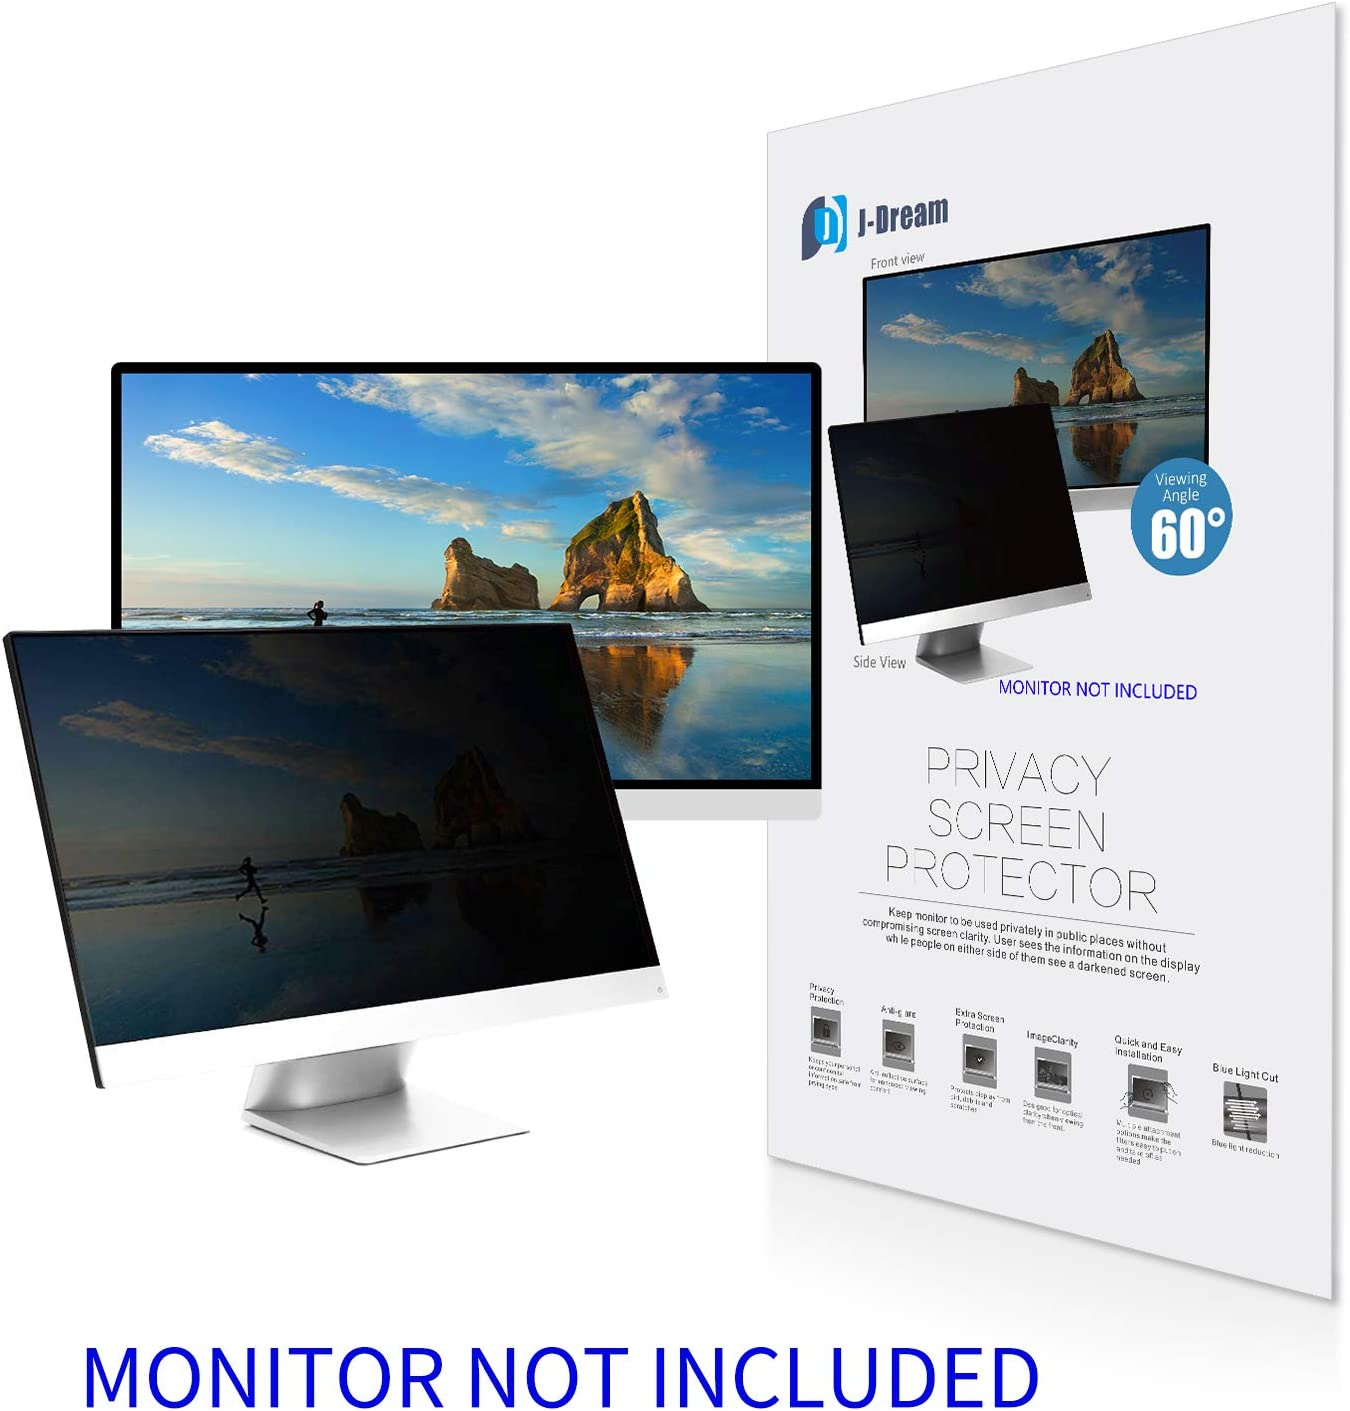 24 Inch Privacy Screen Filter for Widescreen Monitor (16:9 Aspect Ratio) - Please Measure Carefully!